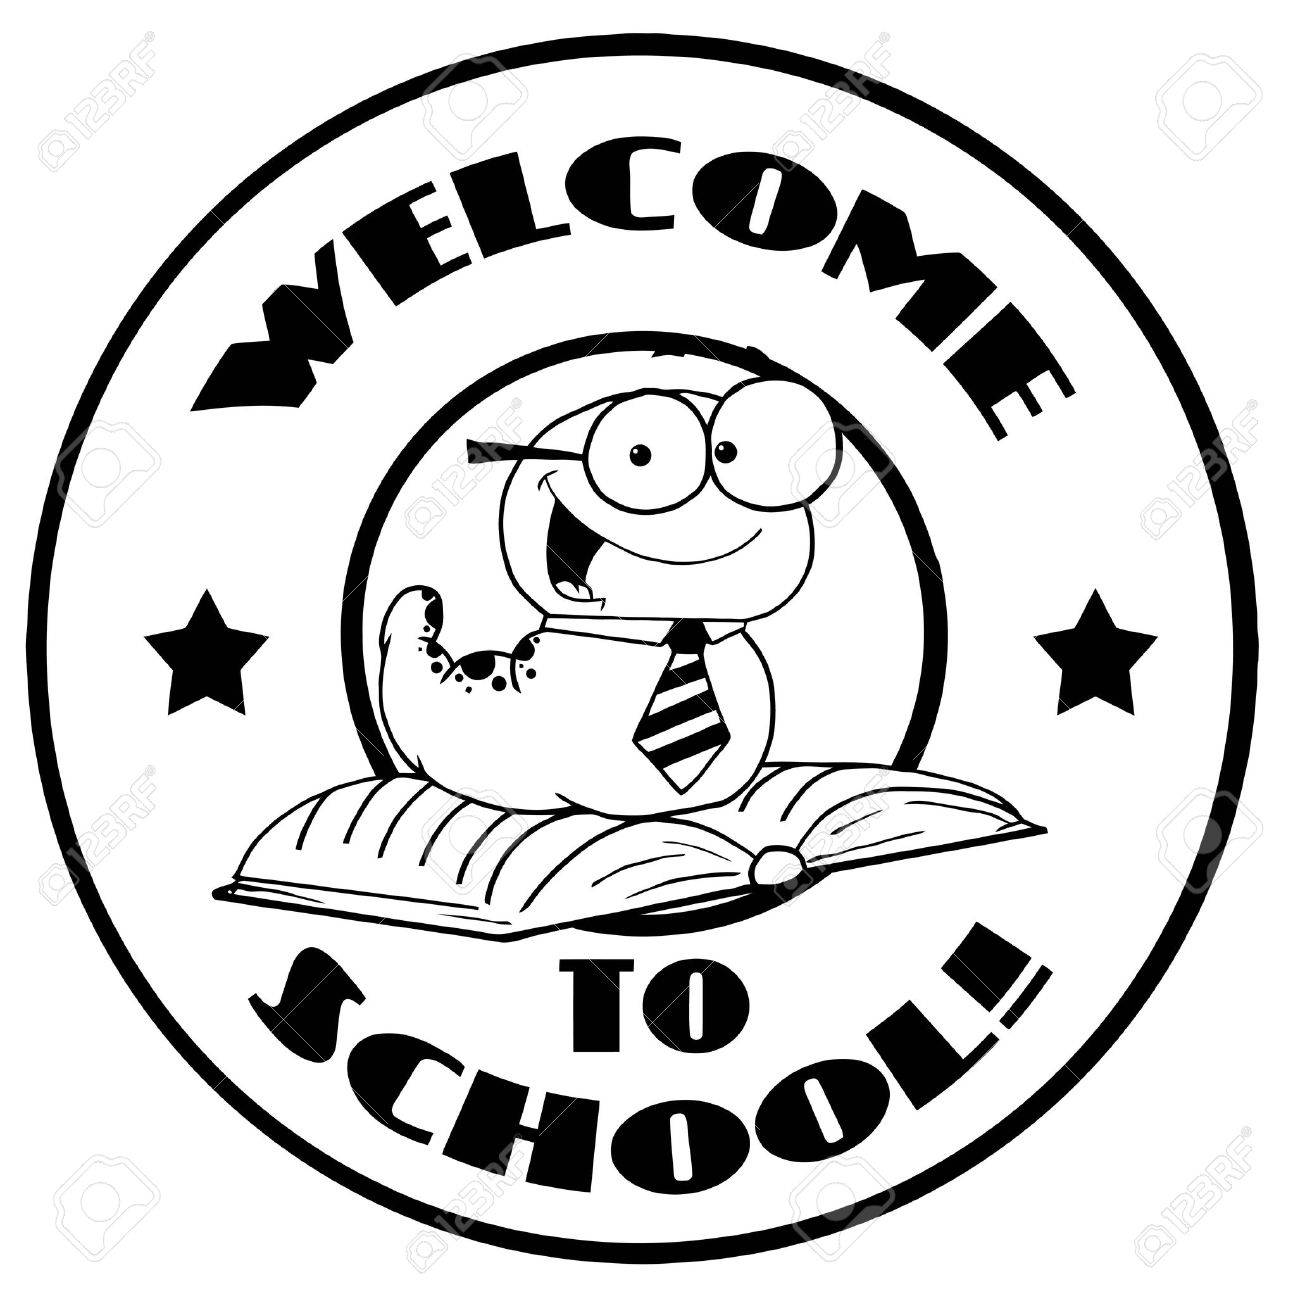 black and white worm on a welcome back to school circle royalty free